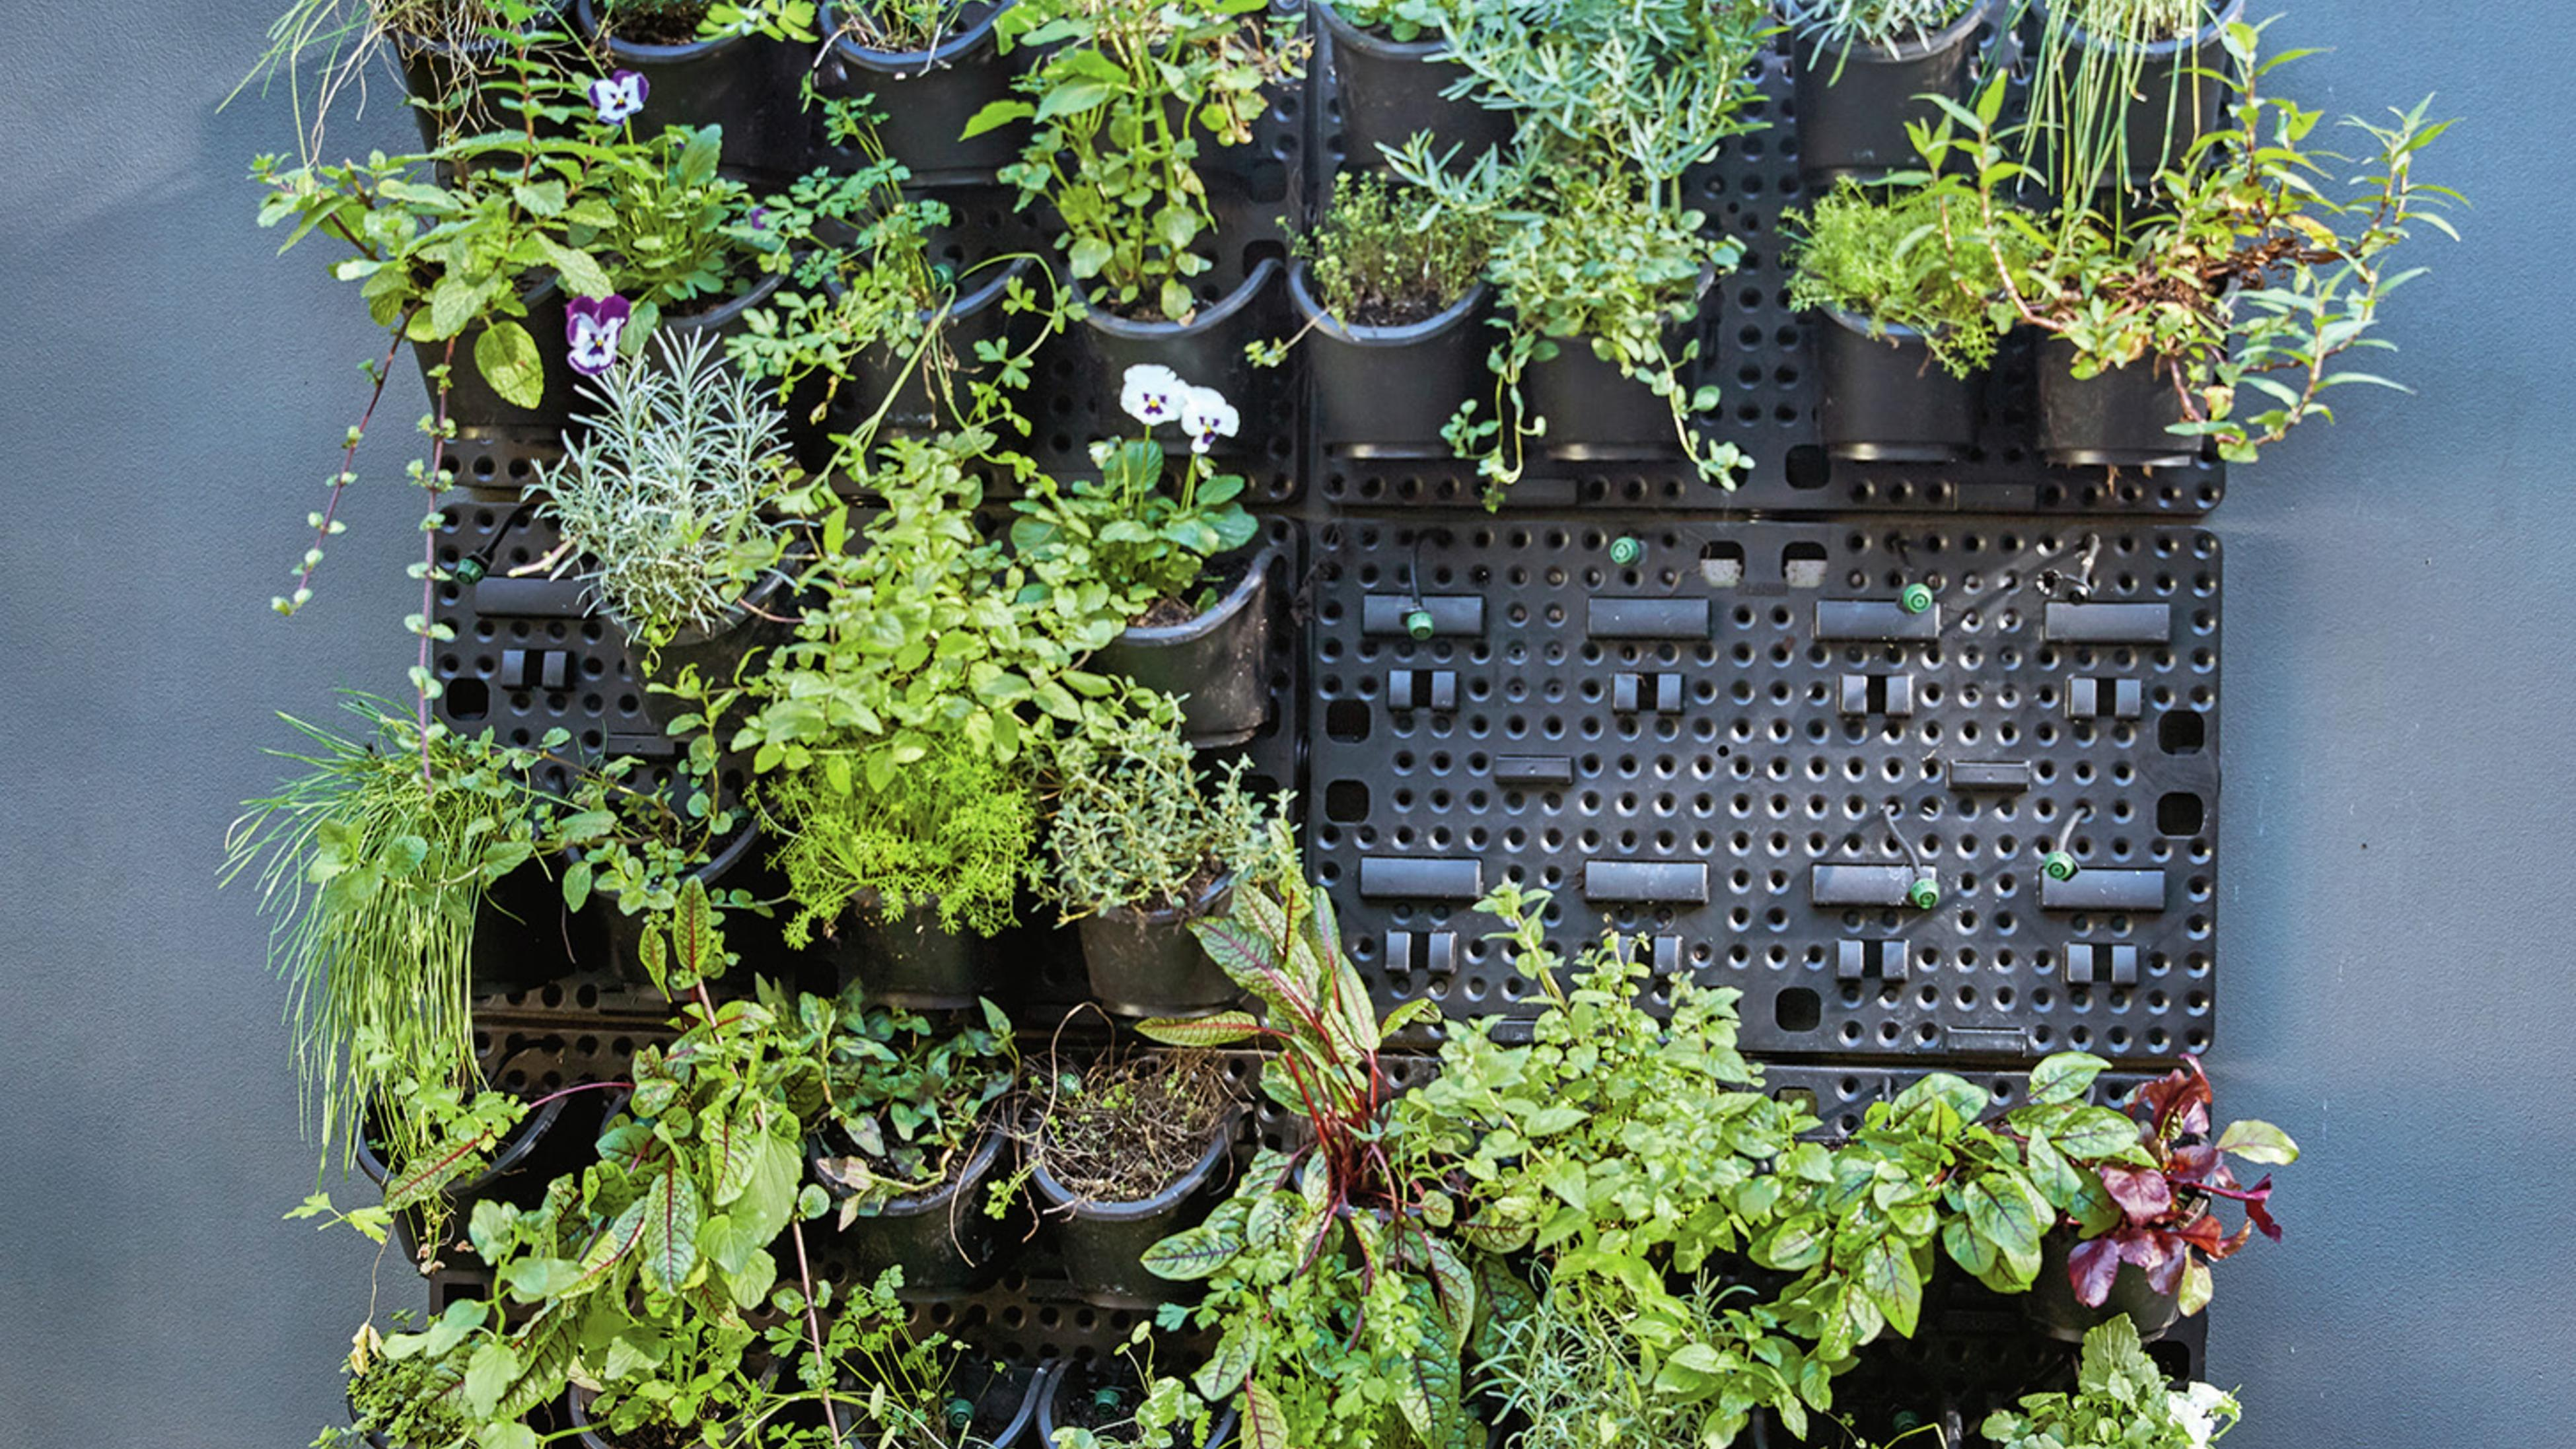 Vertical garden with lots of herbs and flower plants growing in the pots.